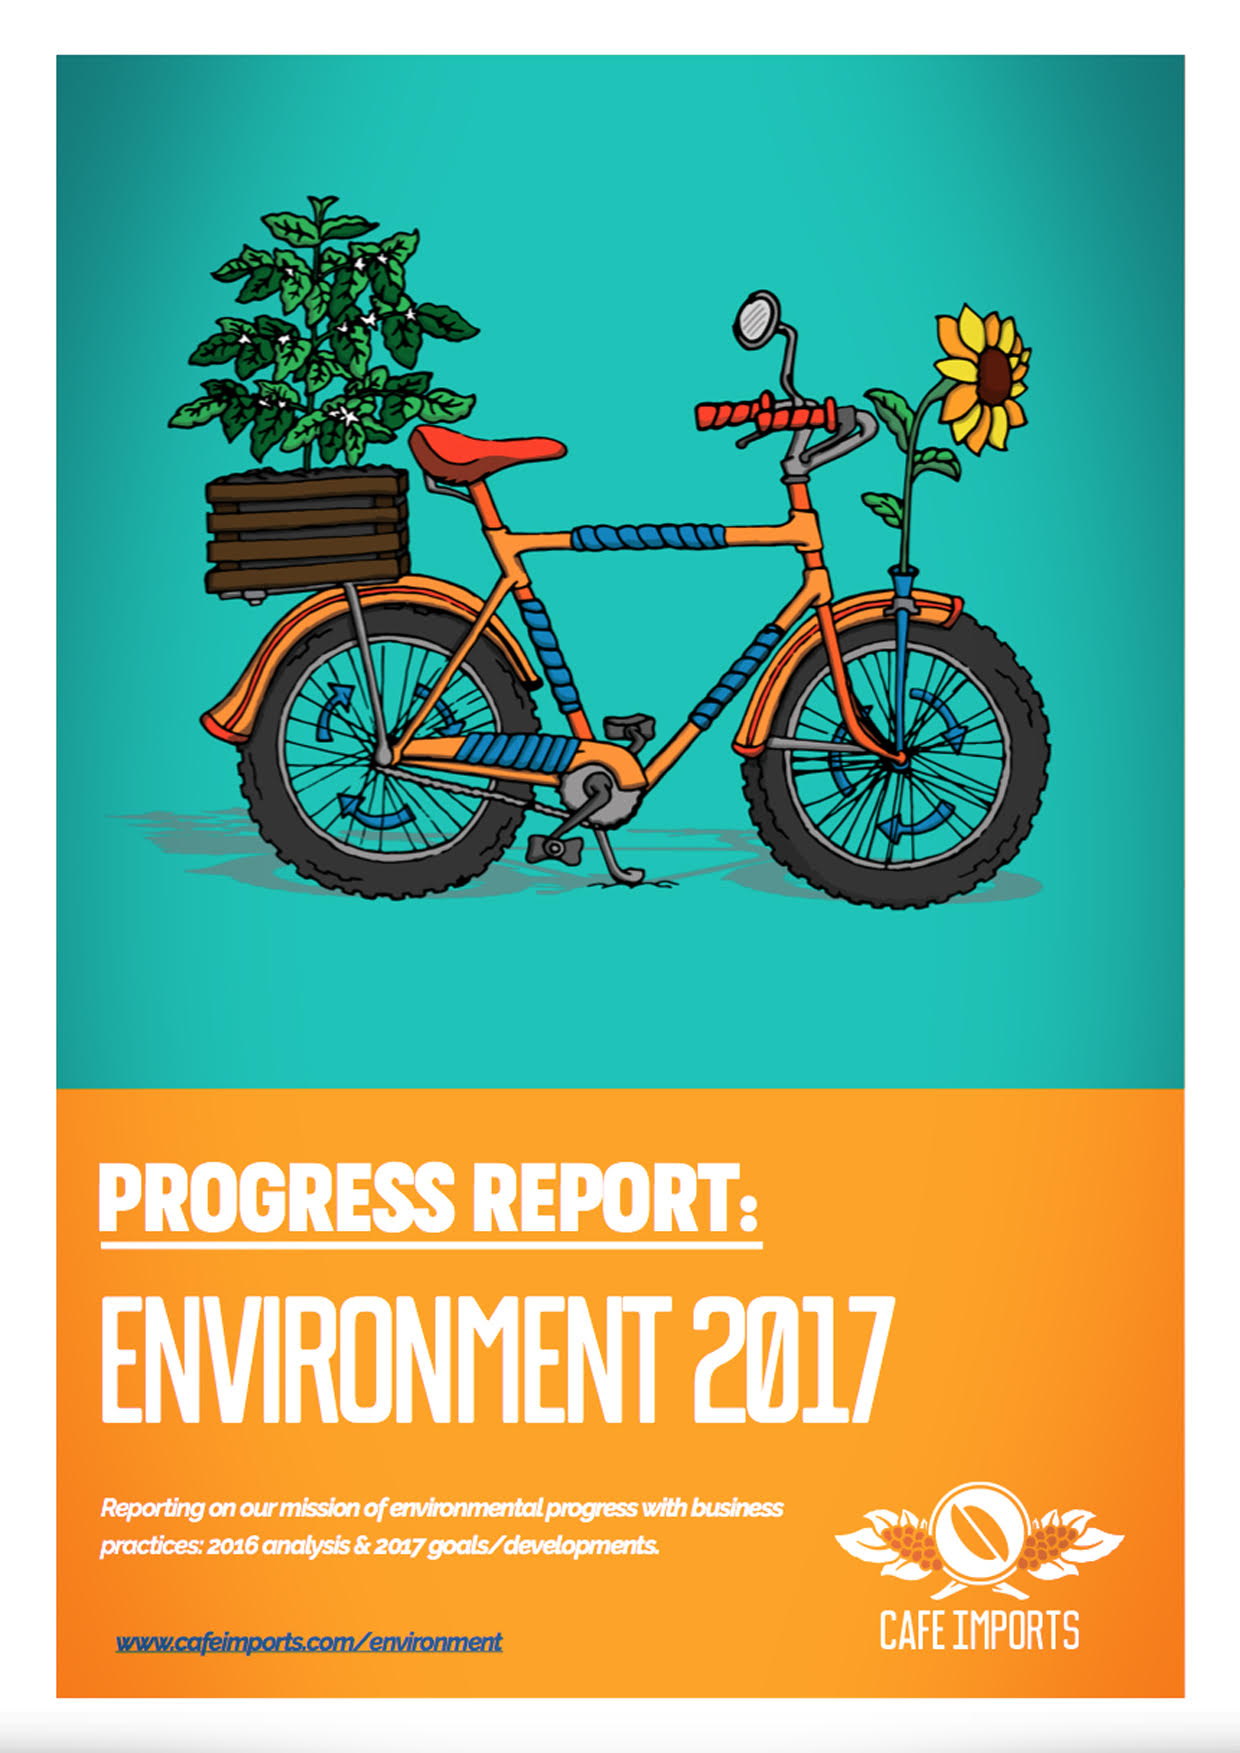 cafe imports environmental report